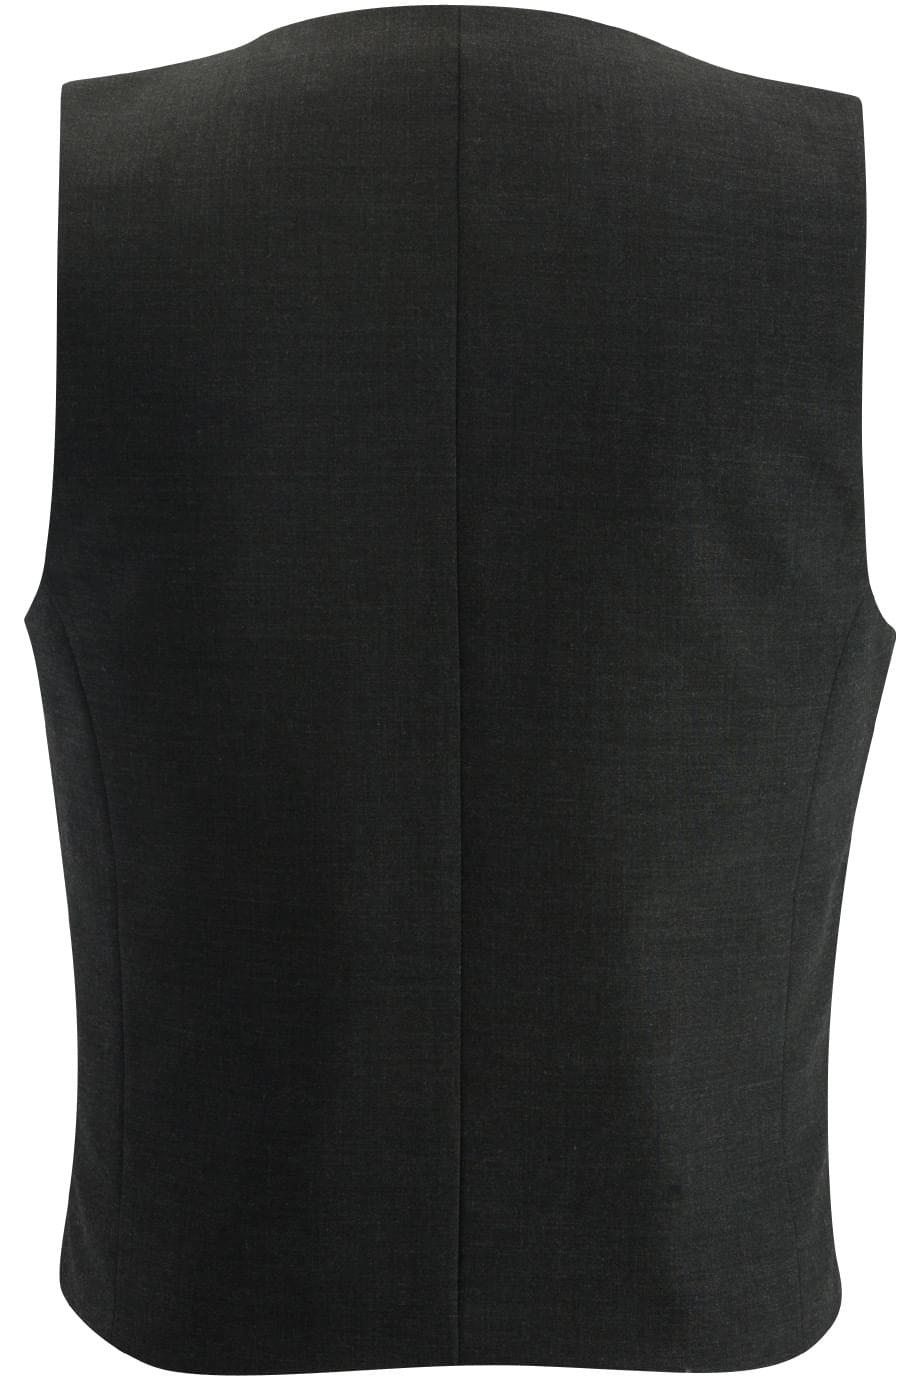 REDWOOD & ROSS® SIGNATURE VEST